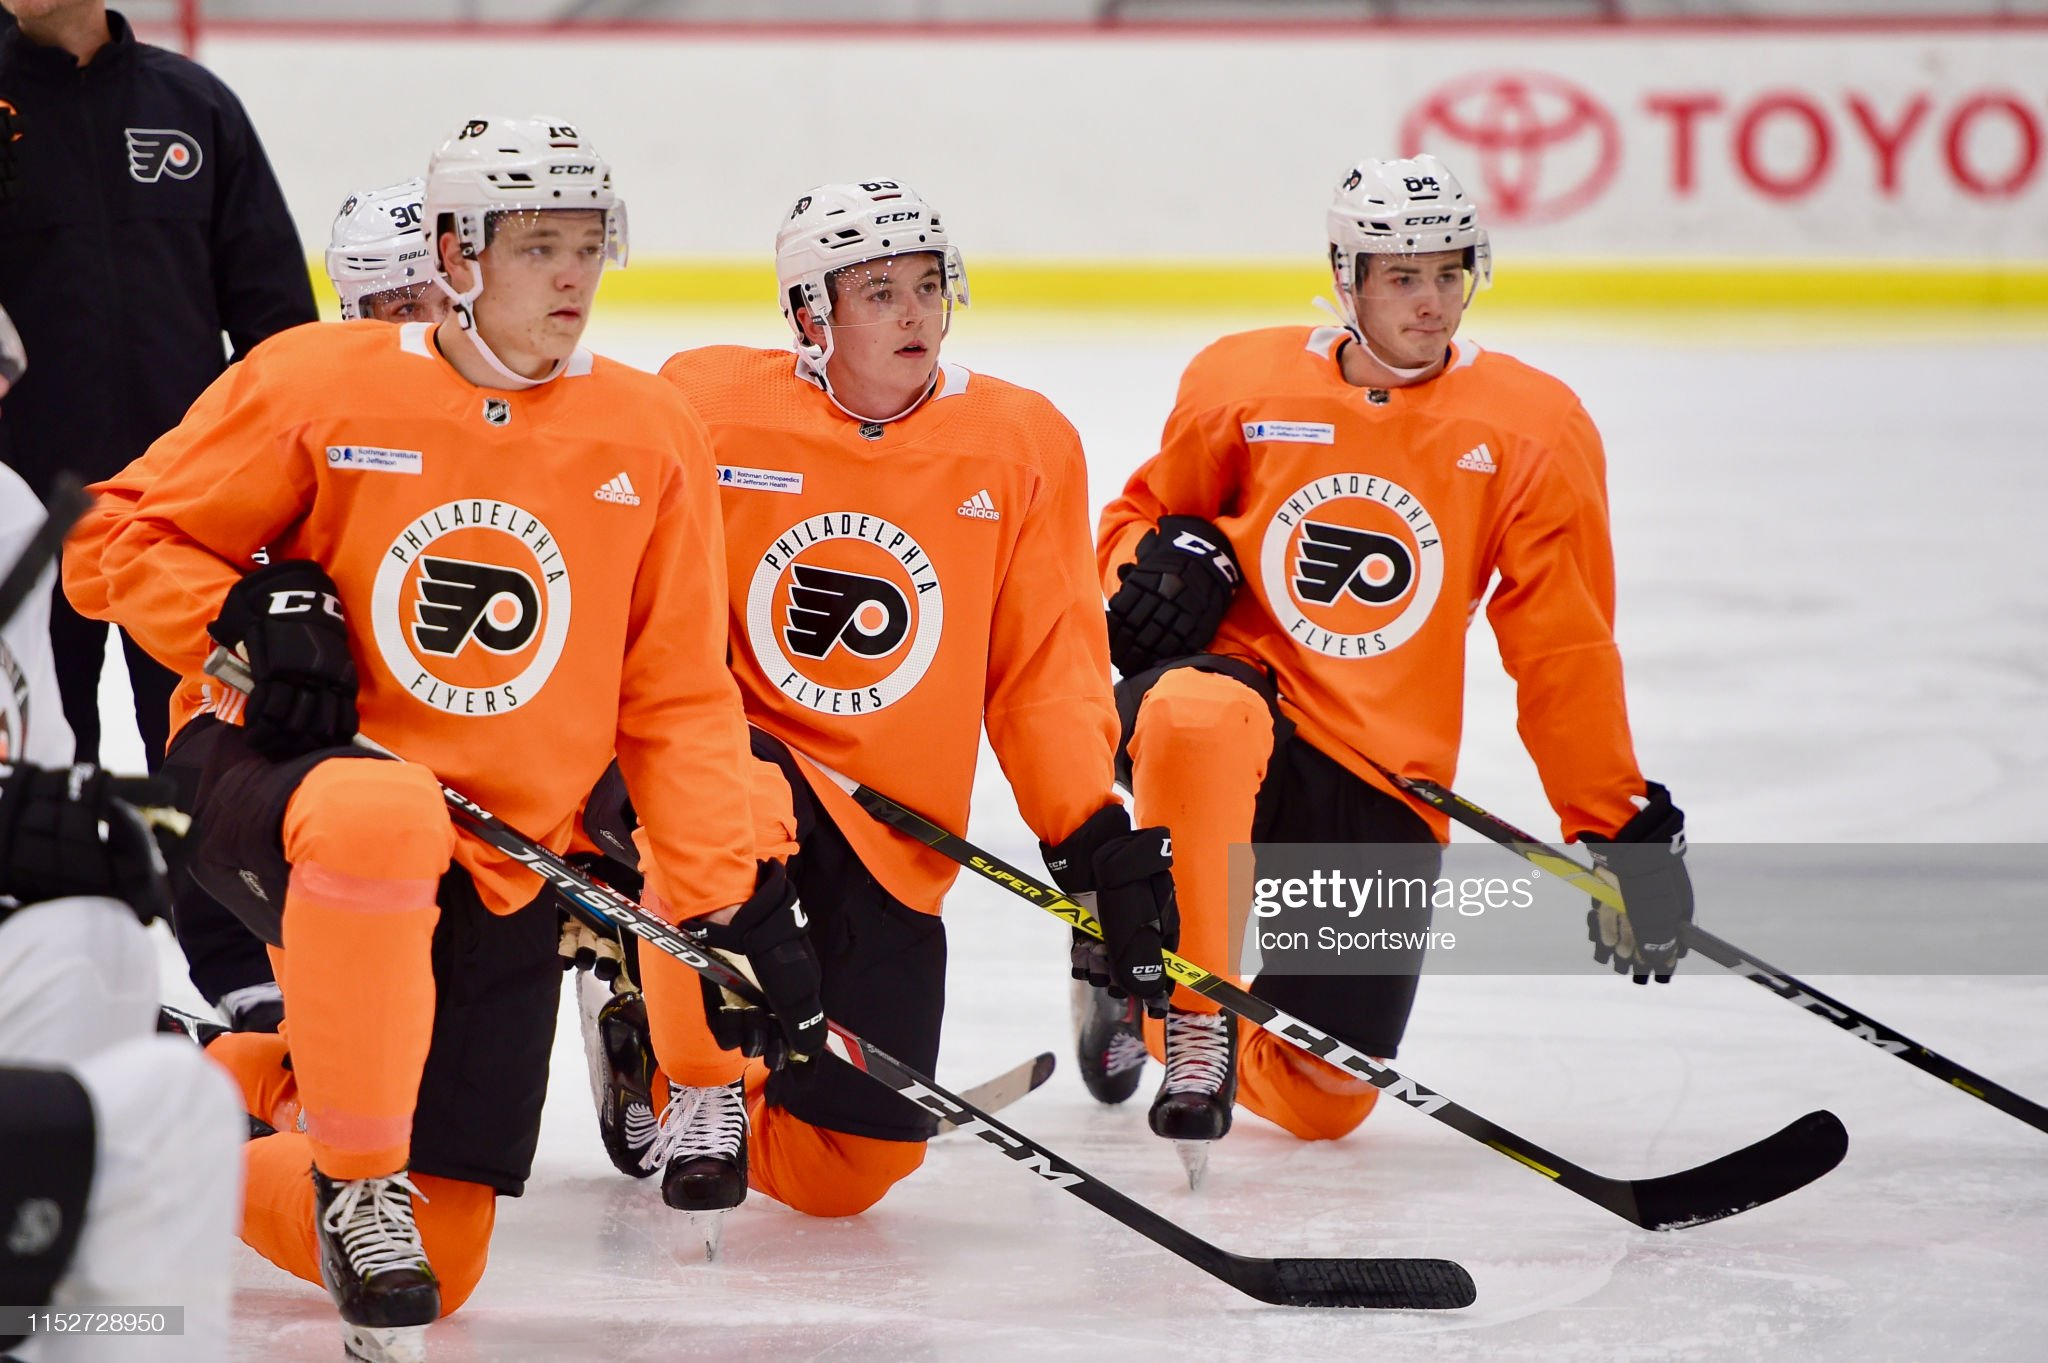 mathew-strome-emmett-sproule-and-seamus-